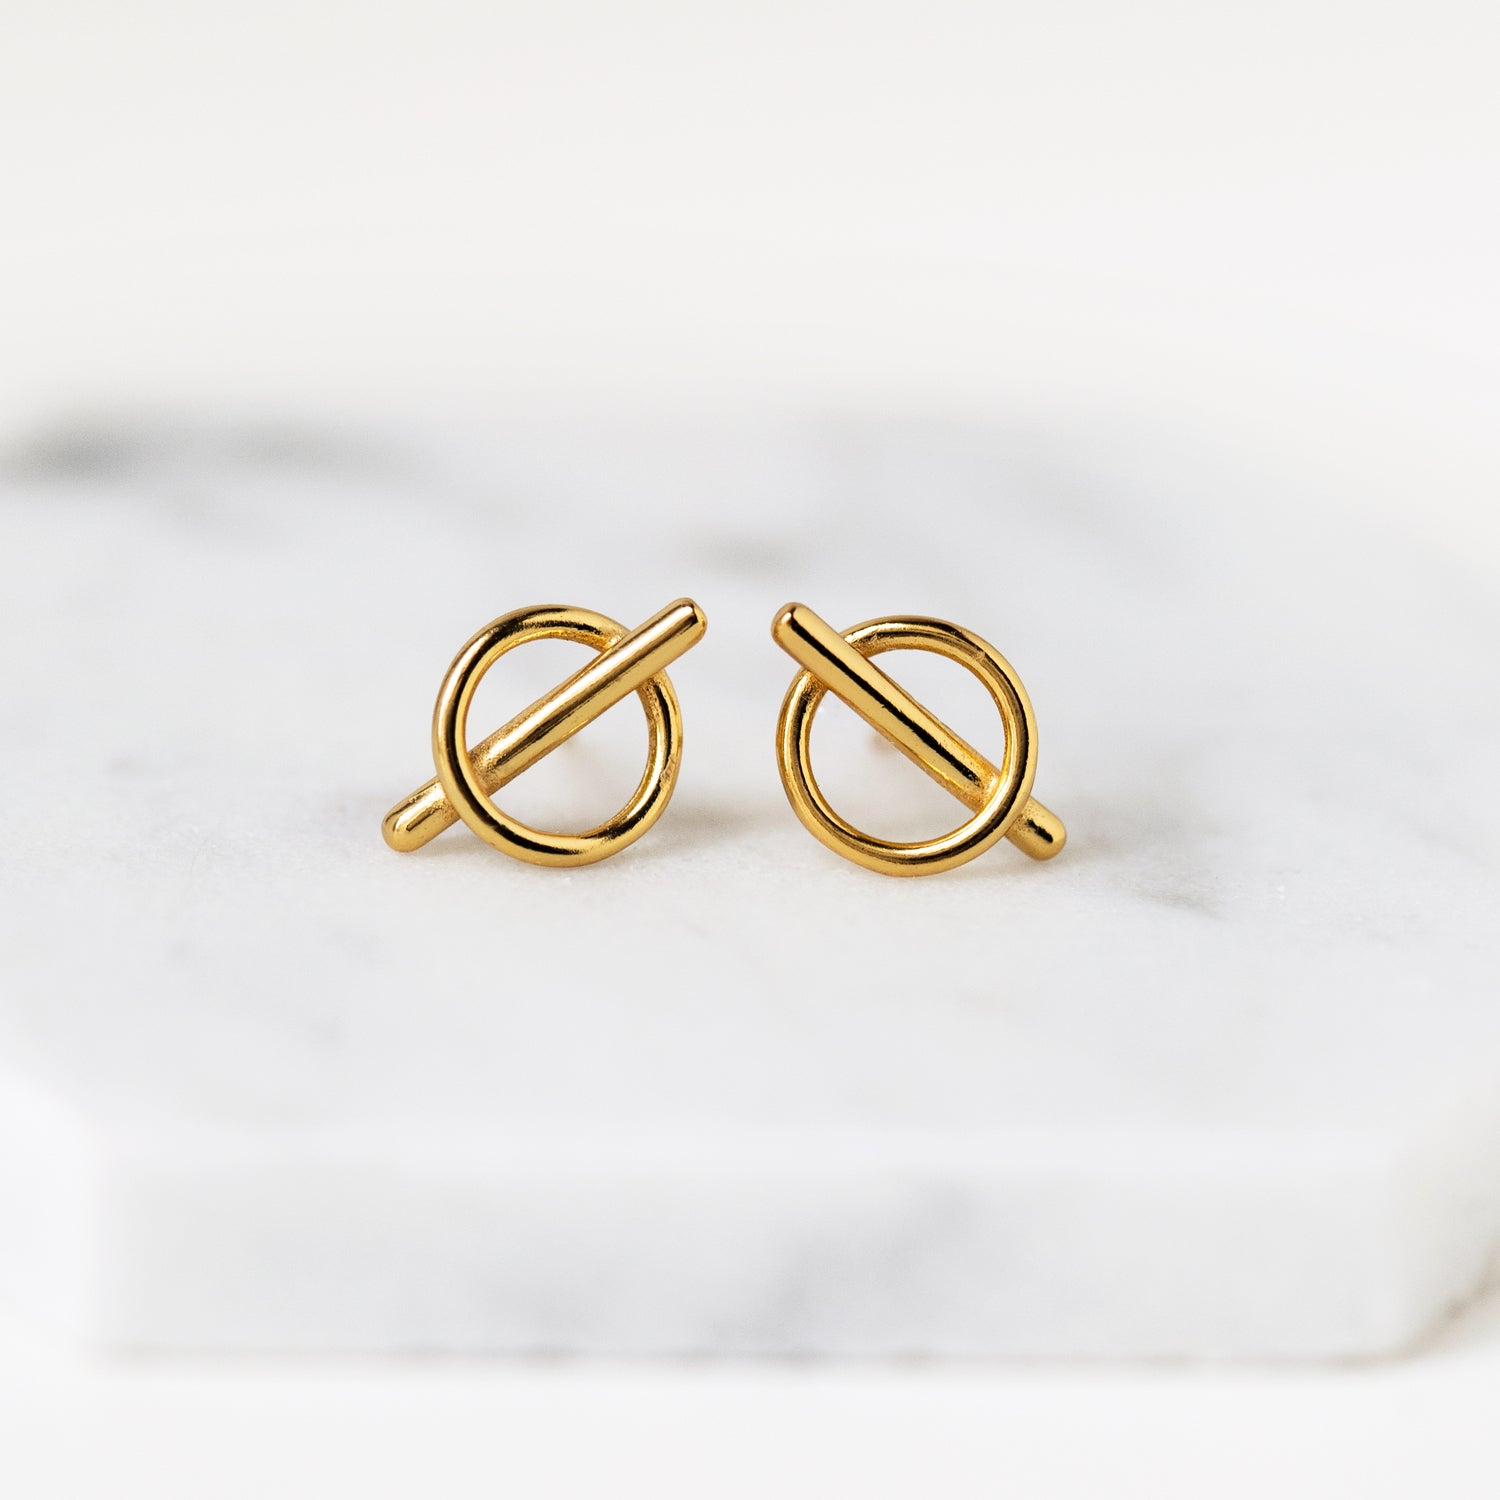 Circle Bar Stud Earrings, Earrings - AMY O. Jewelry